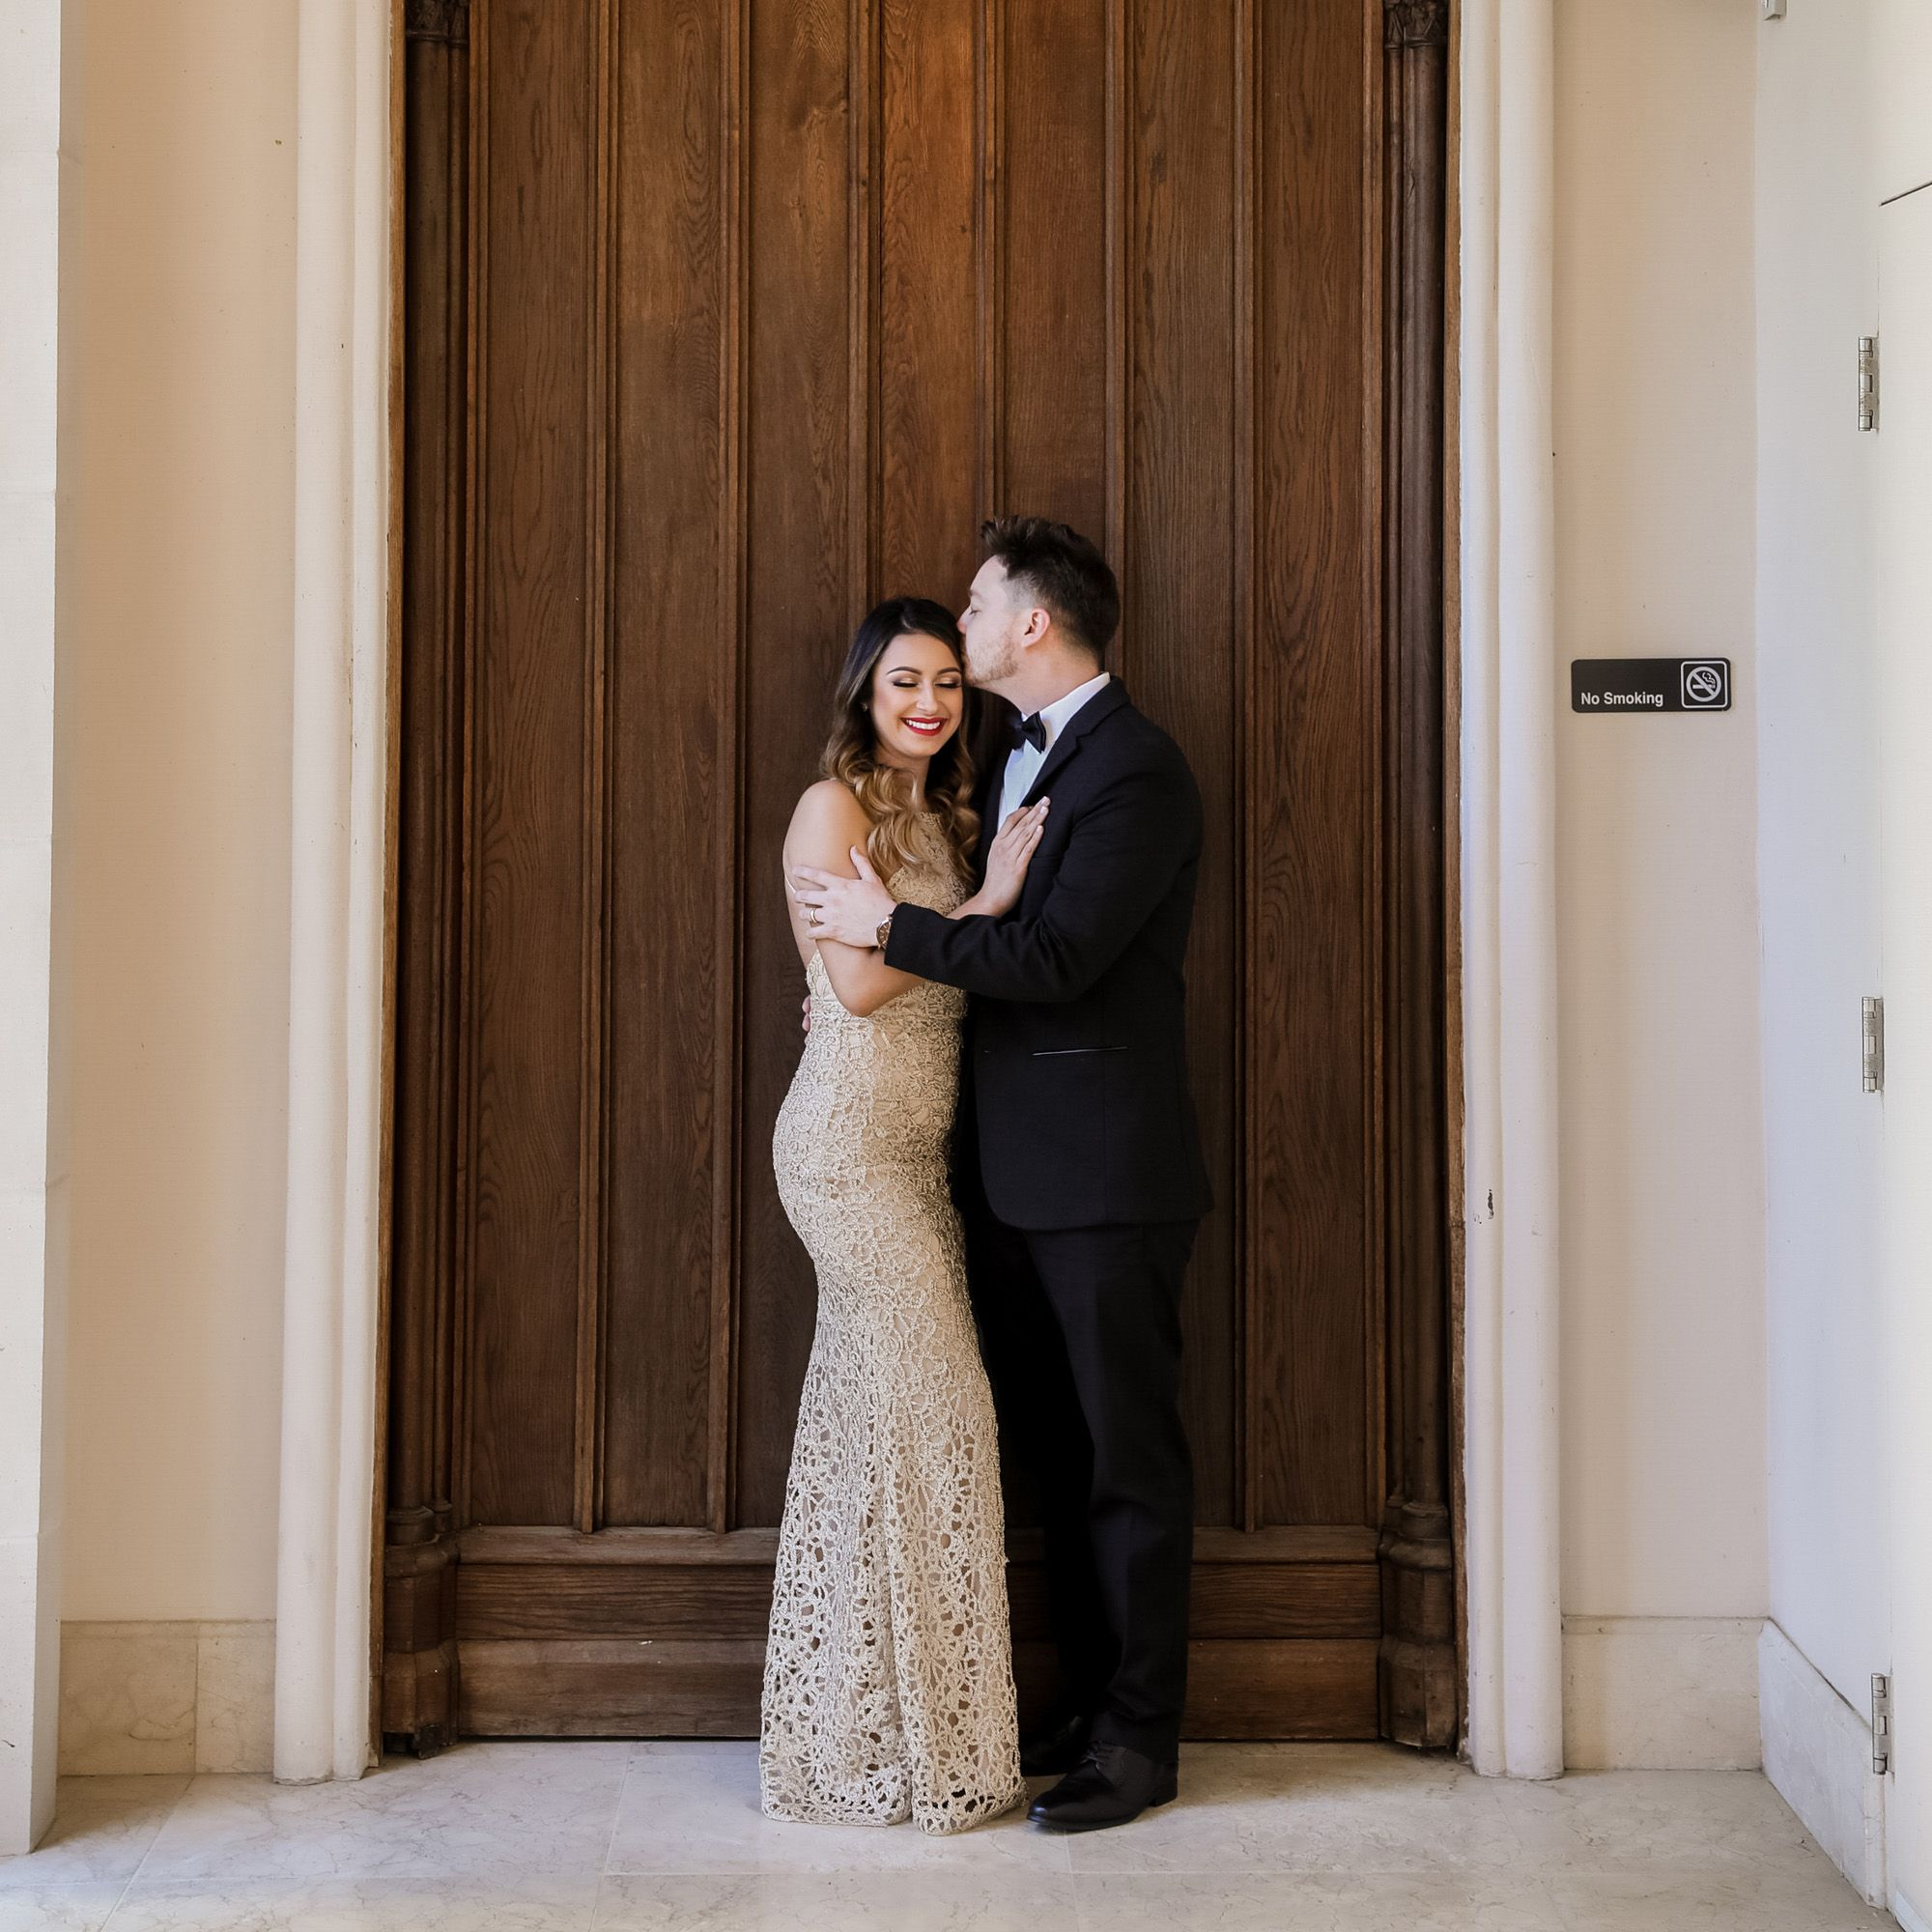 Engagement Locations | George Street Photo & Video